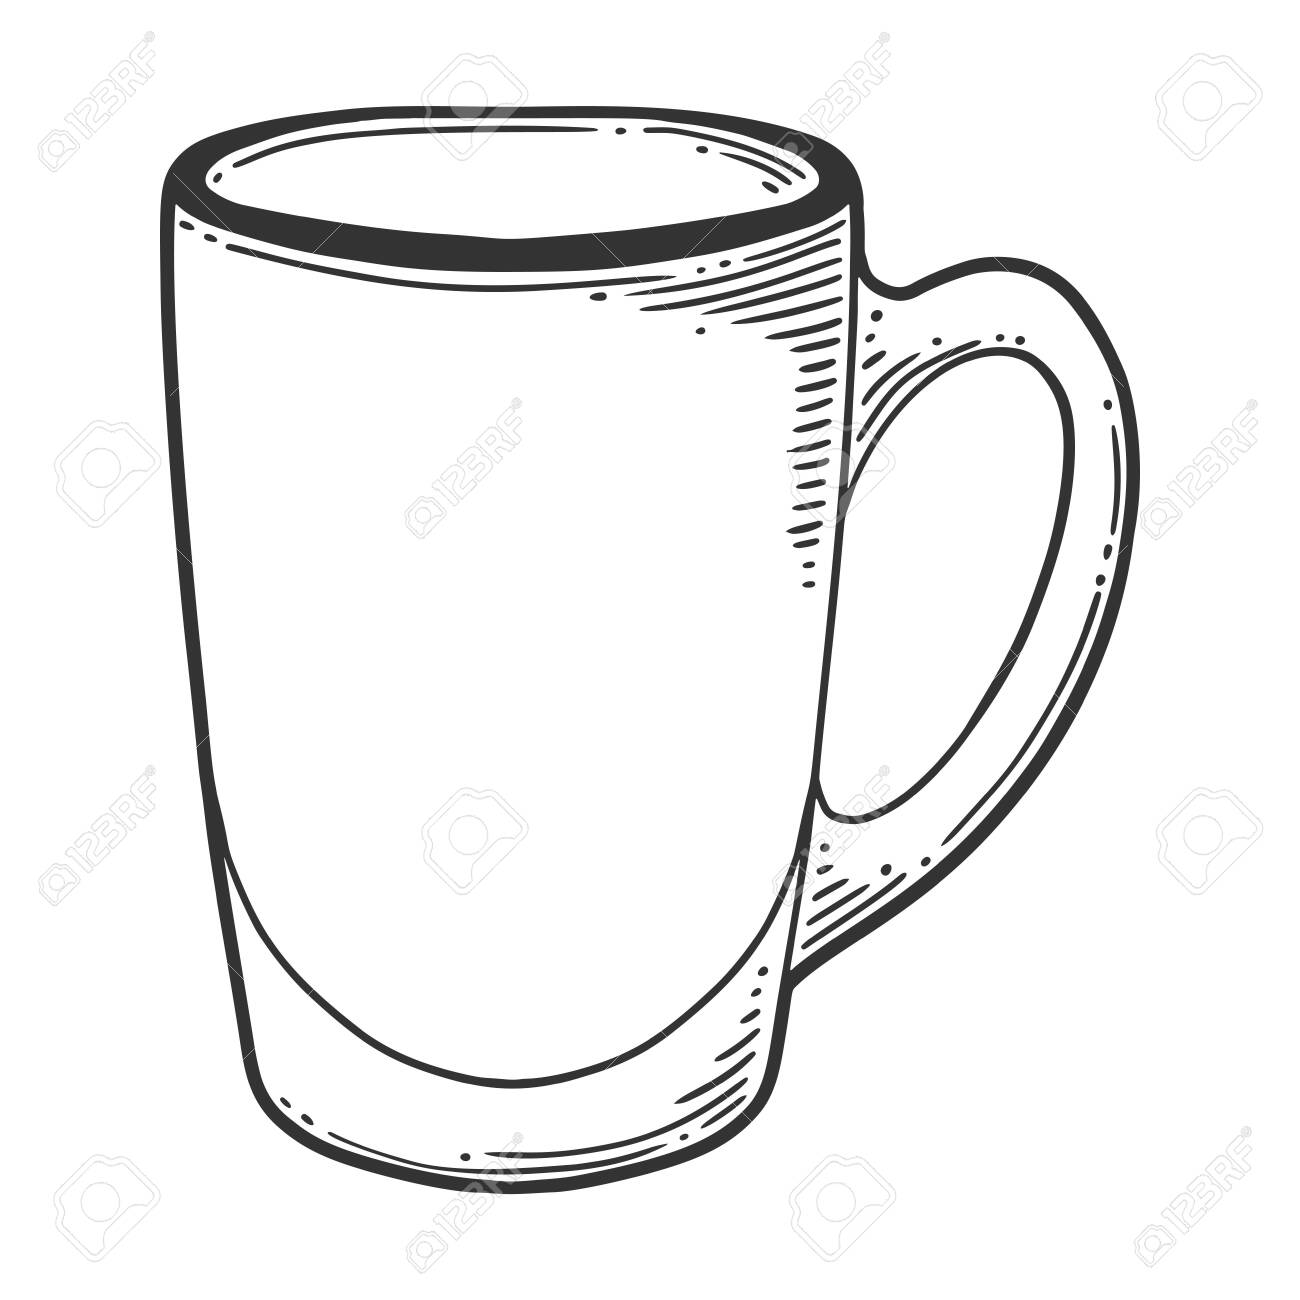 Glass Tea Or Coffee Cup Vector Concept In Doodle And Sketch Royalty Free Cliparts Vectors And Stock Illustration Image 127904663